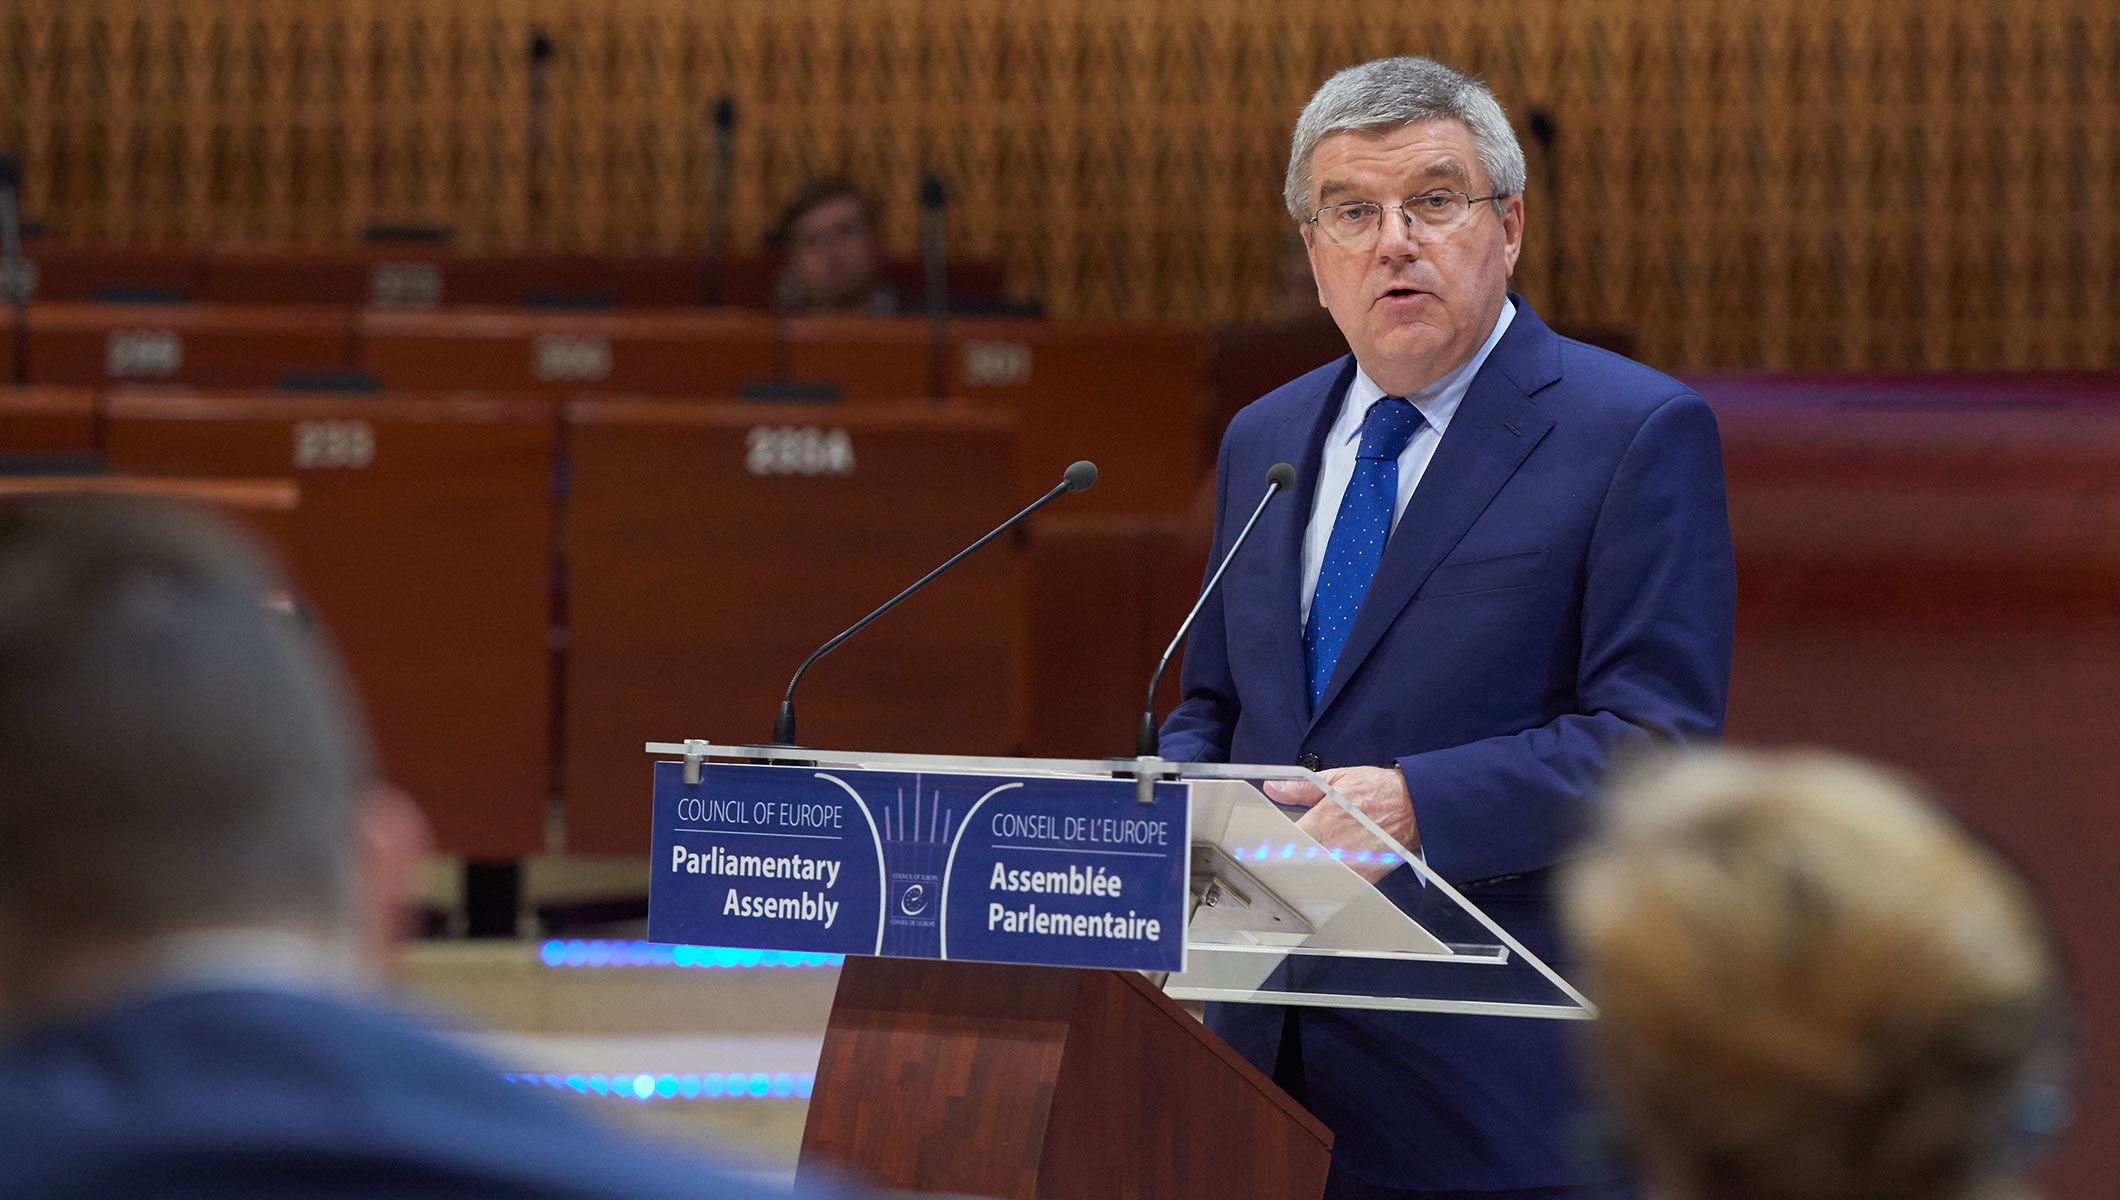 IOC President Thomas Bach at the Parliamentary Assembly of the Council of Europe (PACE) in Strasbourg